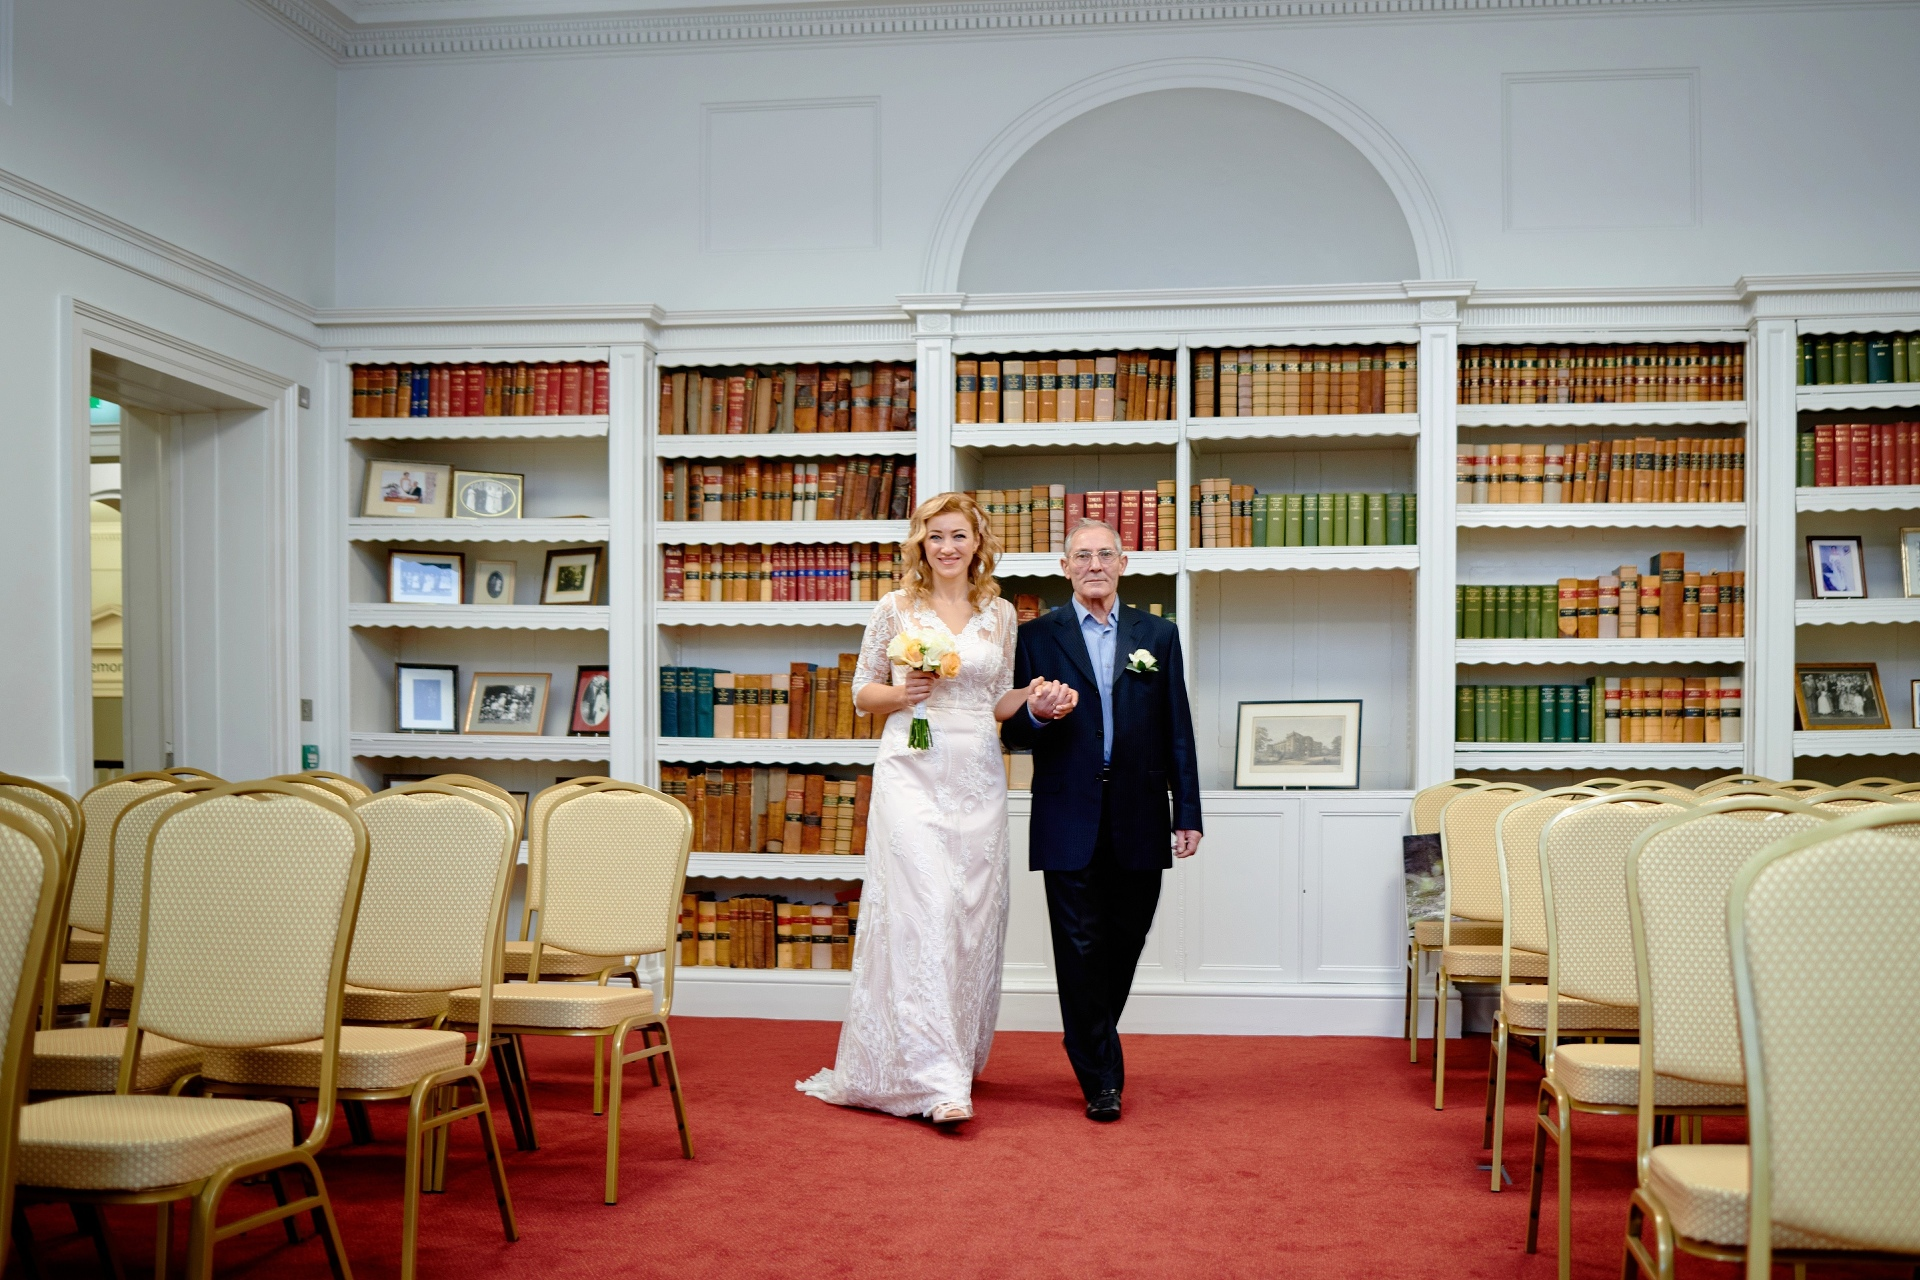 Ceremony Photo - Salisbury Registry Office | Father of the bride was so proud to lead his beautiful daughter on that special day